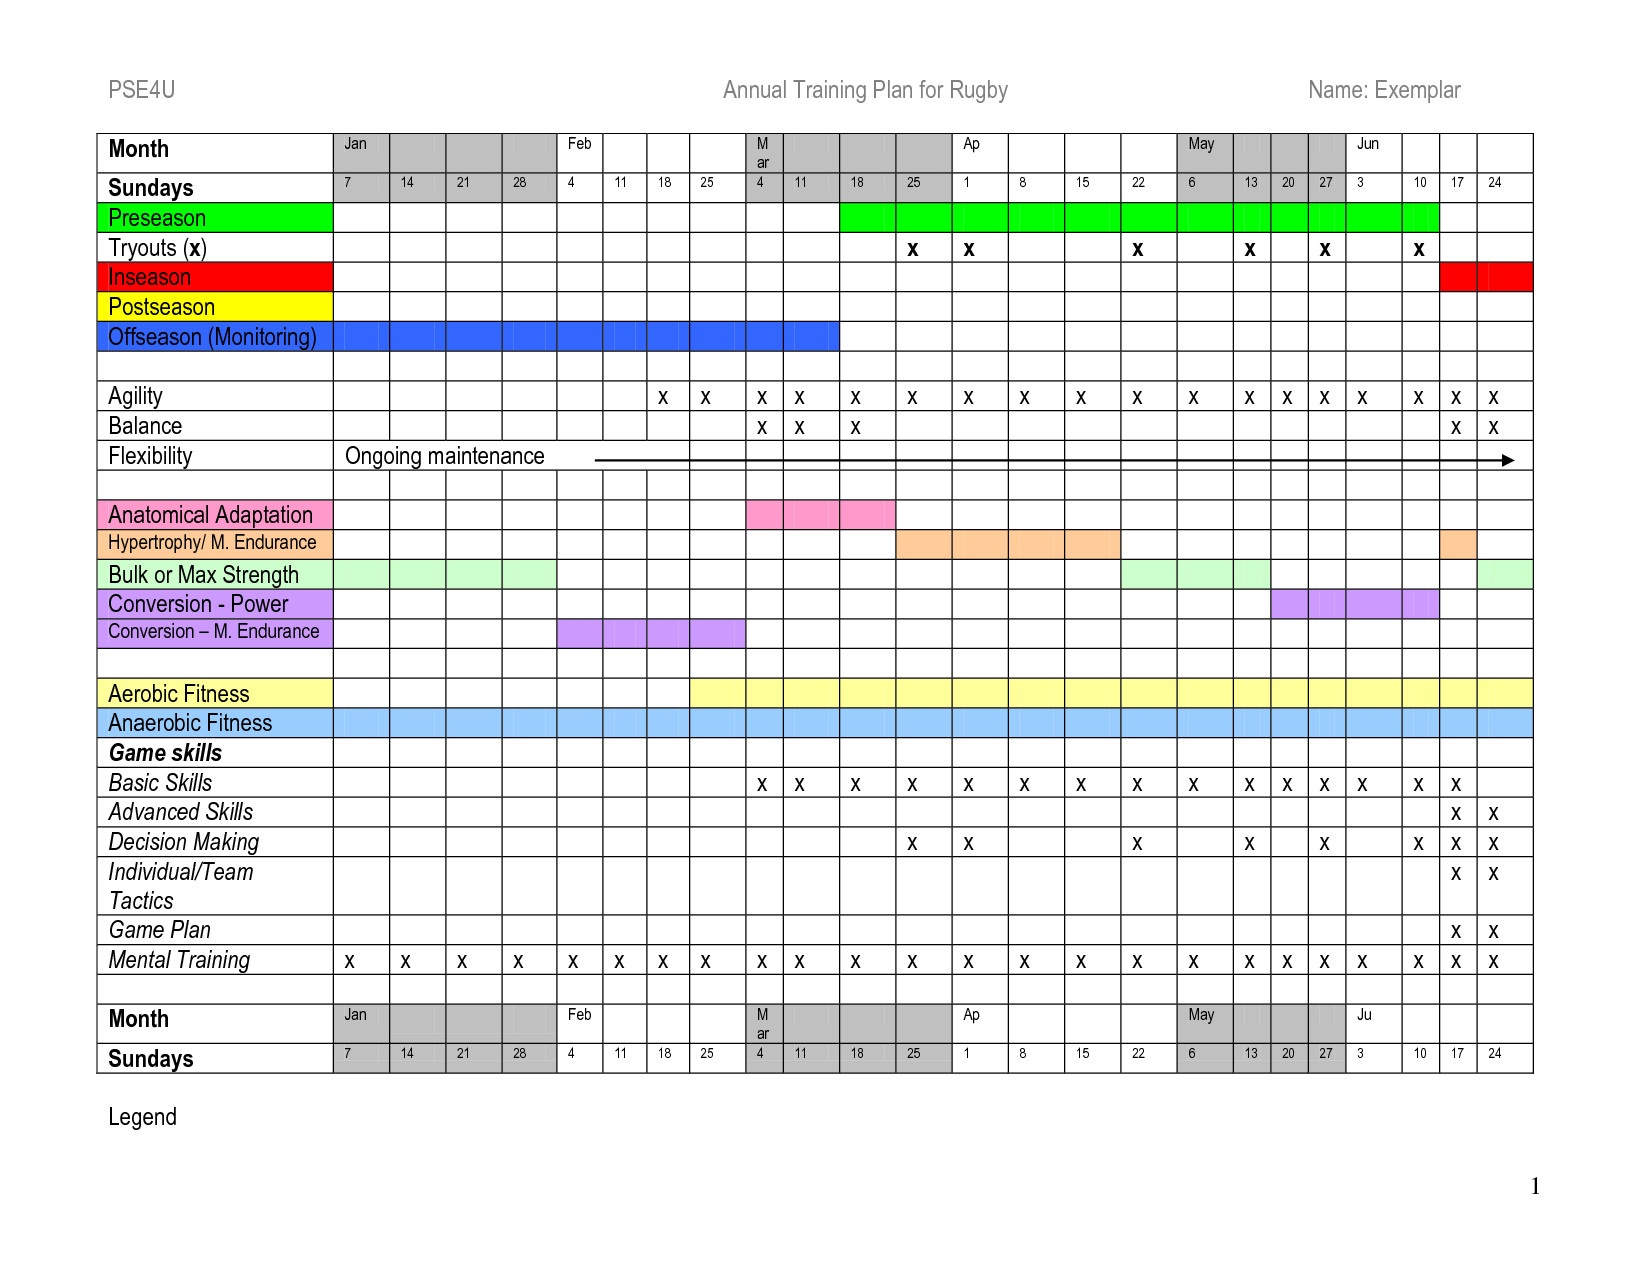 Annual Training Plan Template Excel - printable schedule ...